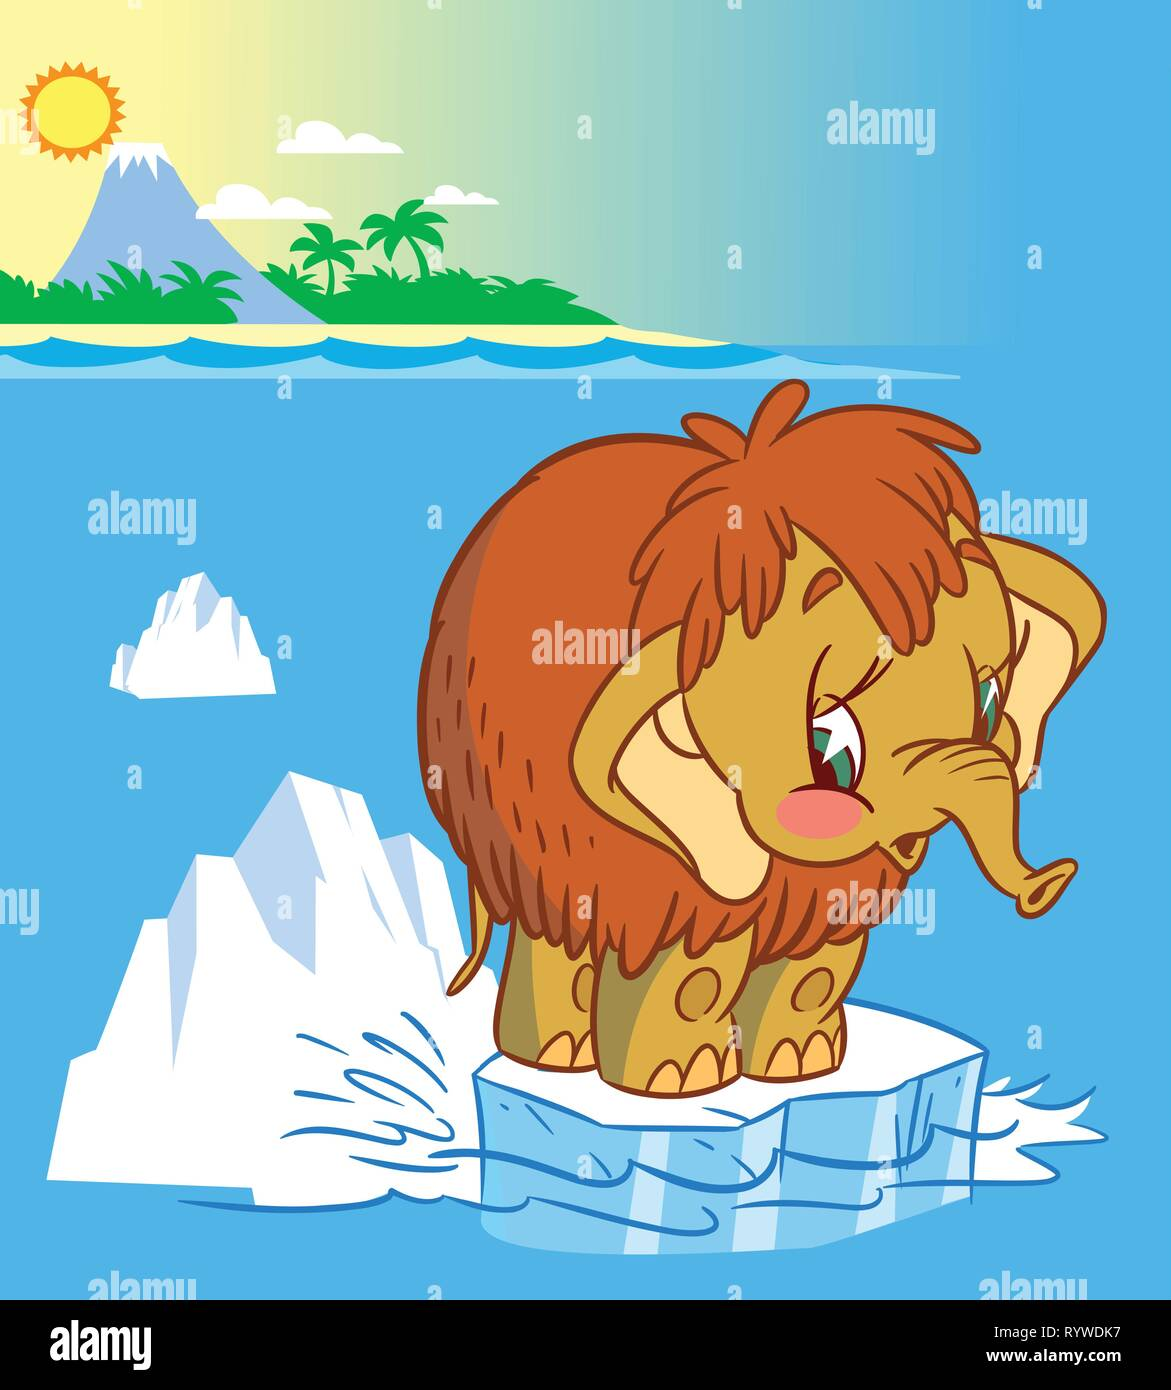 The illustration shows the baby mammoth. It stands on an ice floe in the middle of the ocean. Illustration done in cartoon style - Stock Image